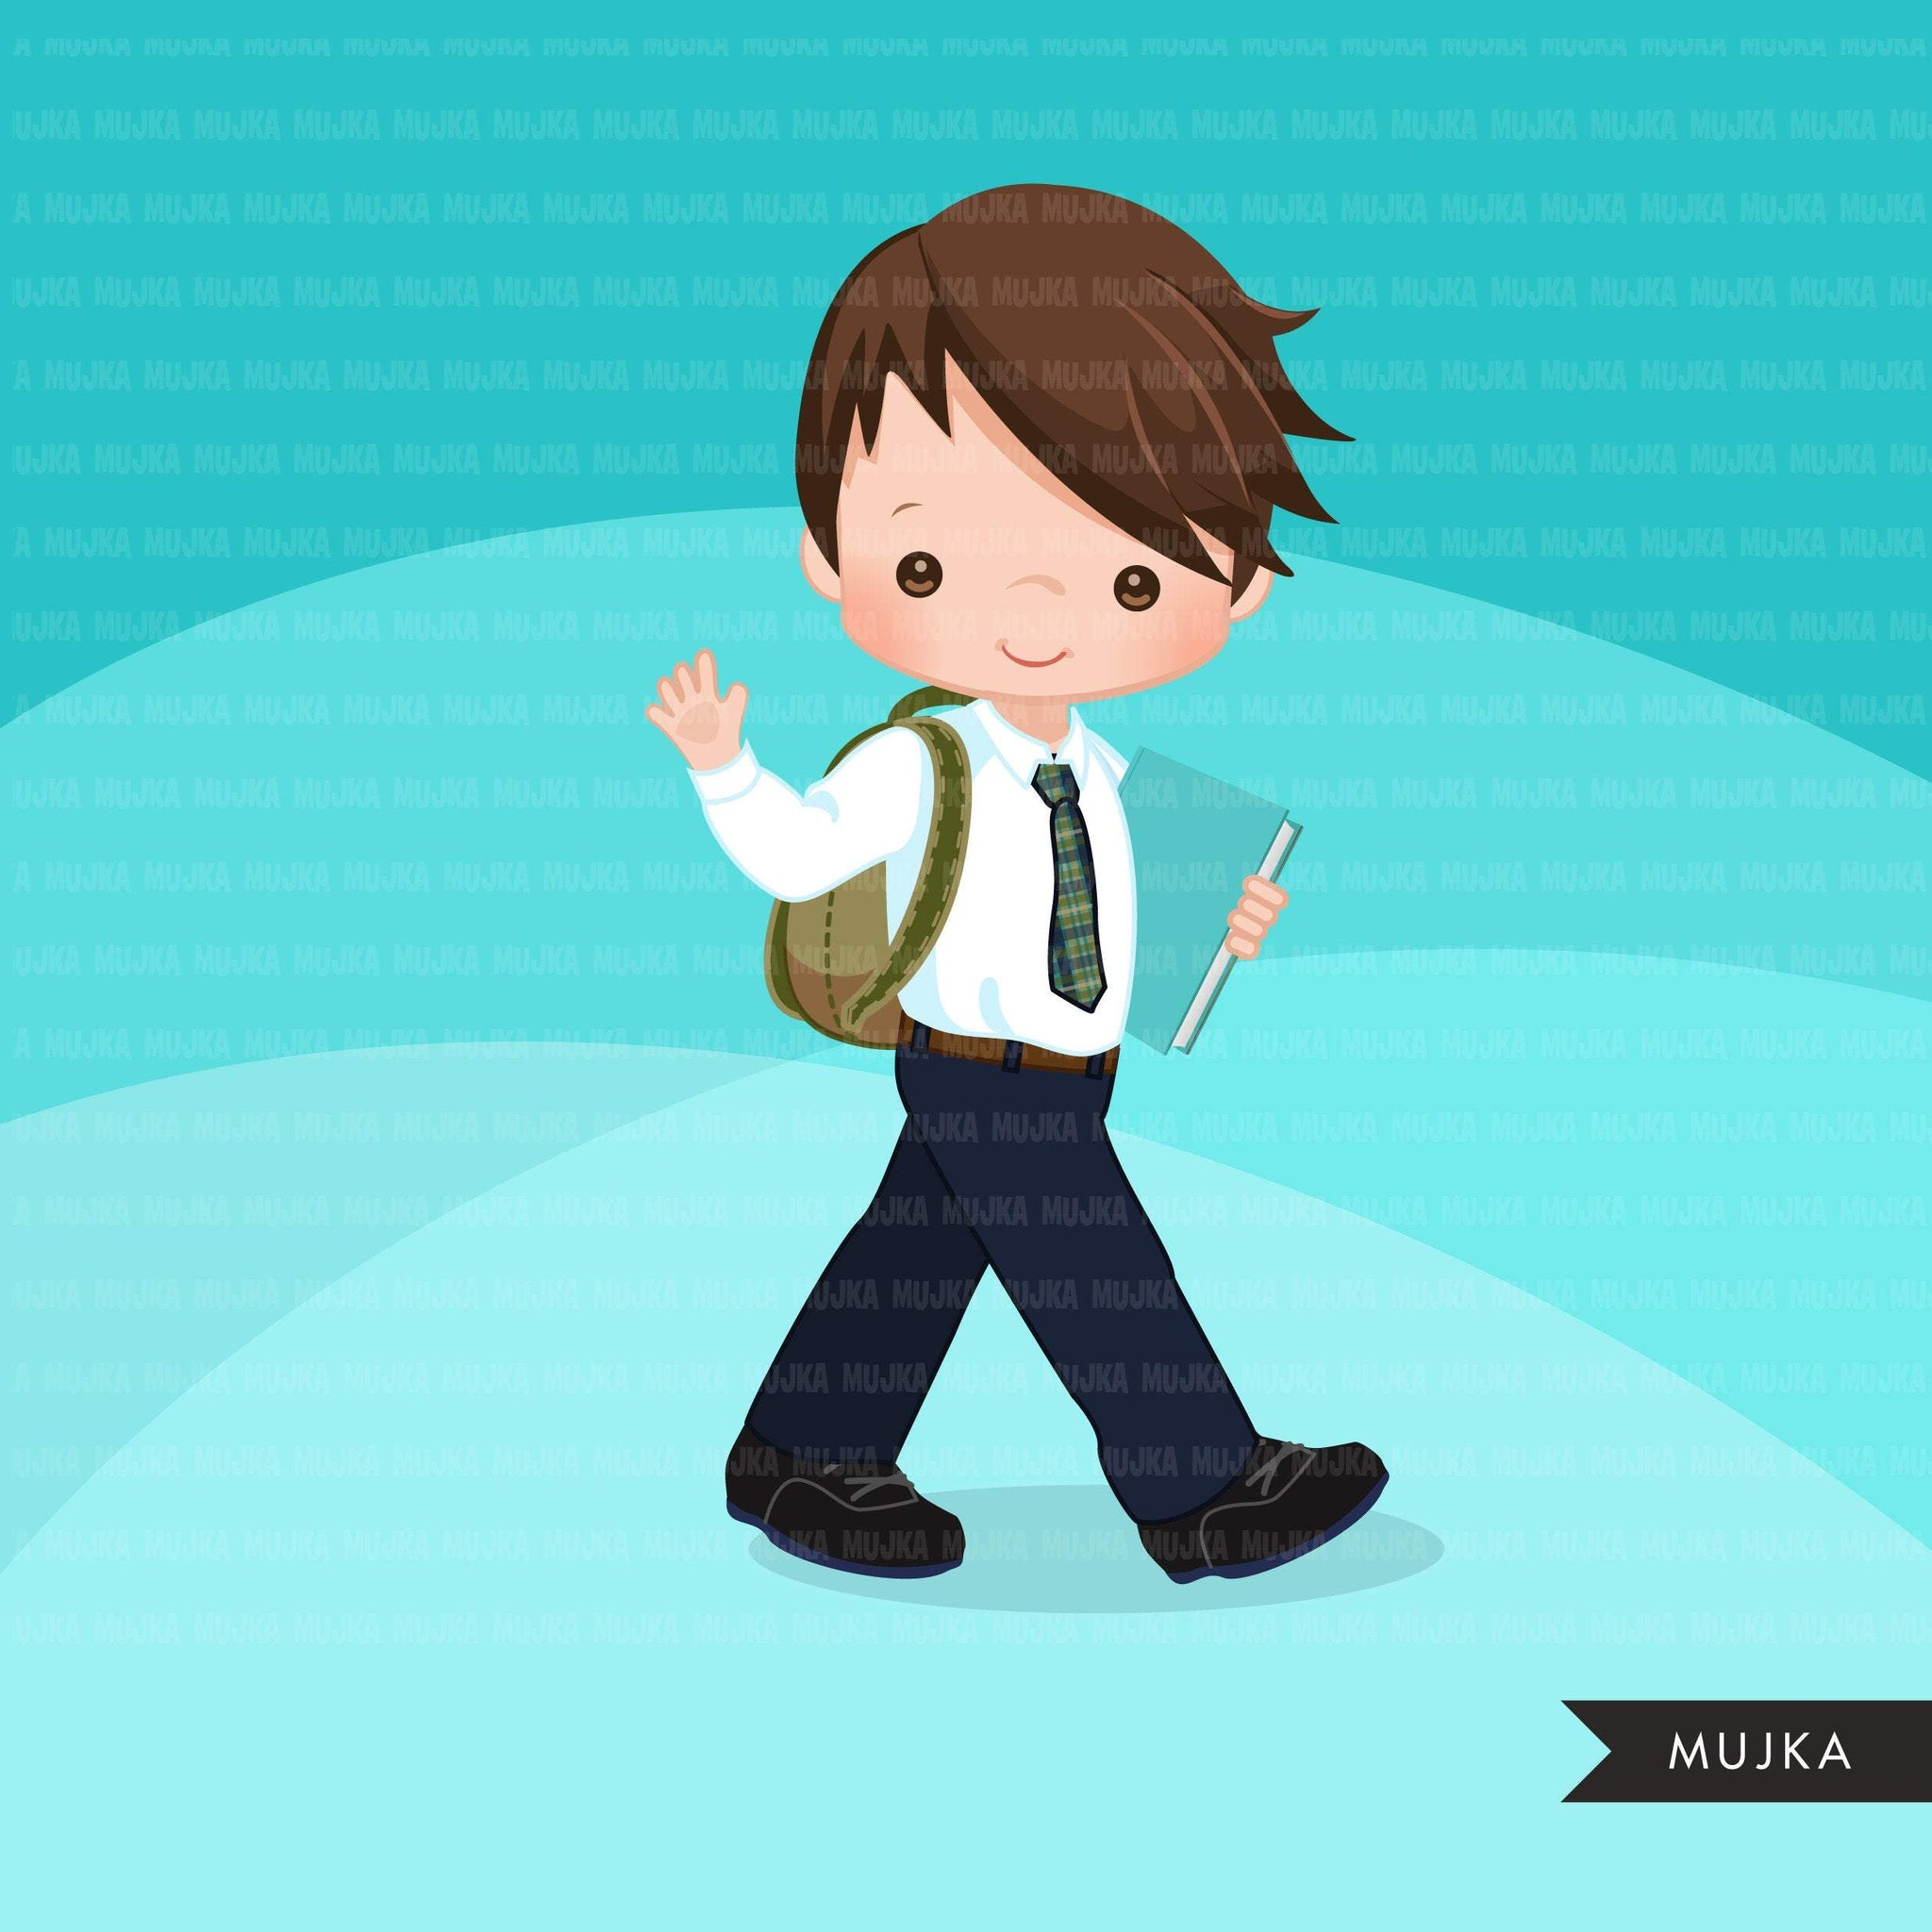 Formal Student clipart, Back to School boy character graphics clip art